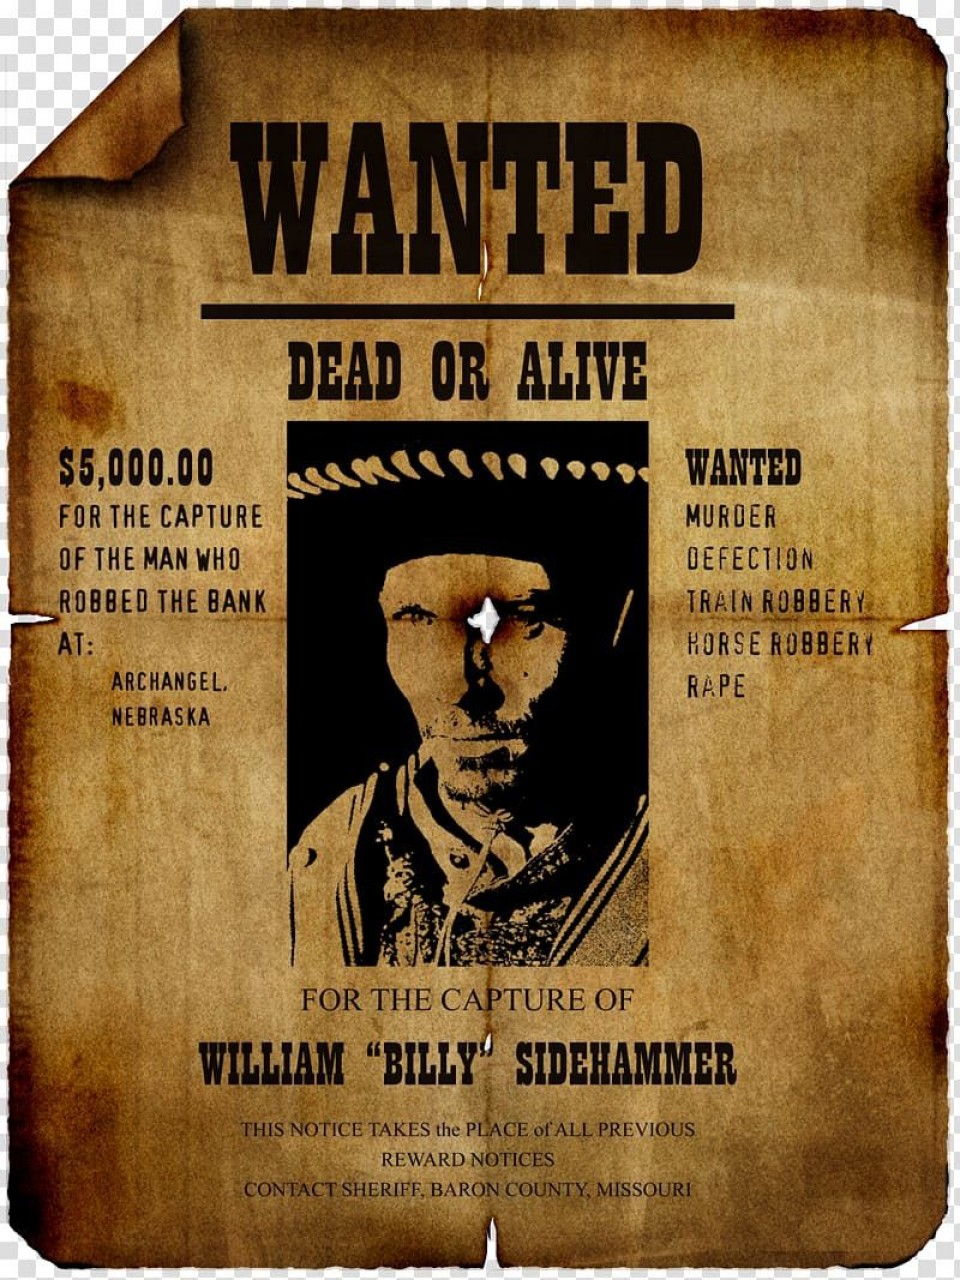 008 Stunning Wanted Poster Template Microsoft Word High Resolution  Western Most960